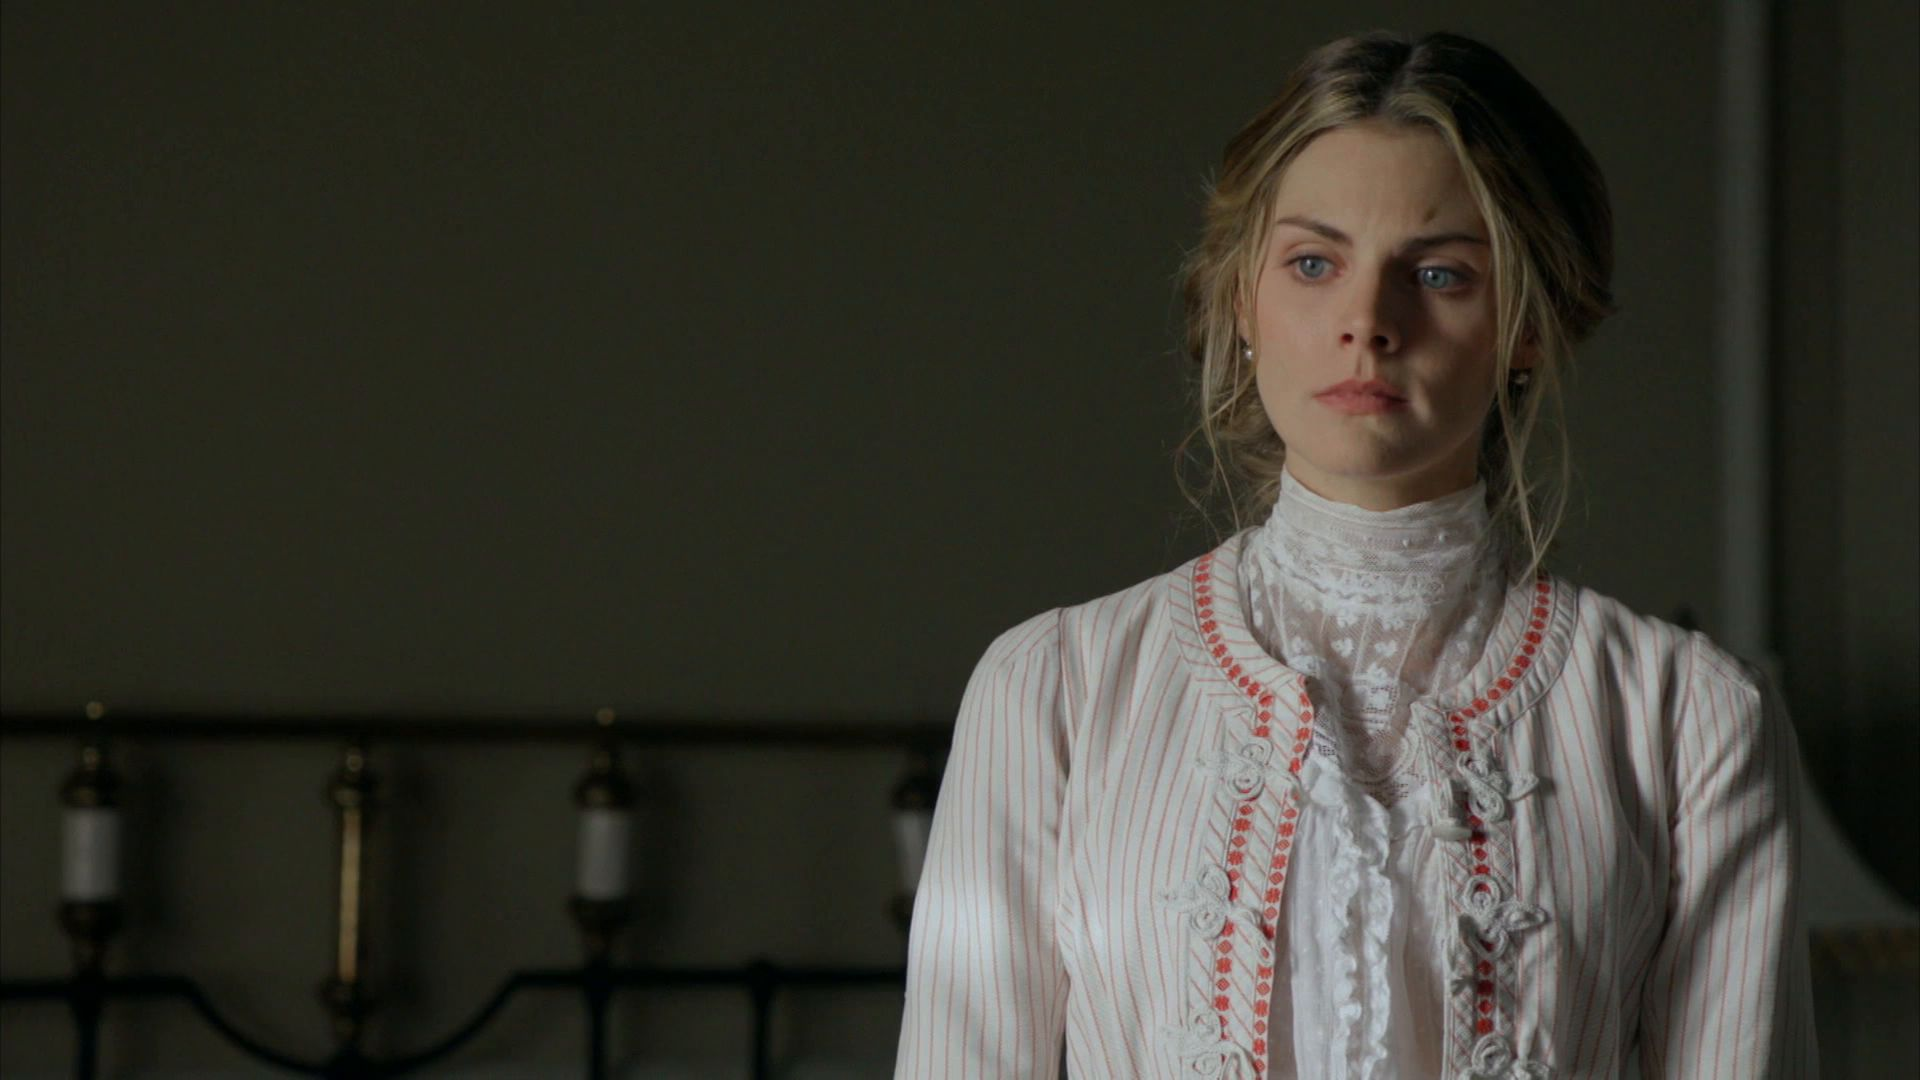 Amaia Salamanca Gran Hotel grand hotel - watch episodes on netflix or streaming online